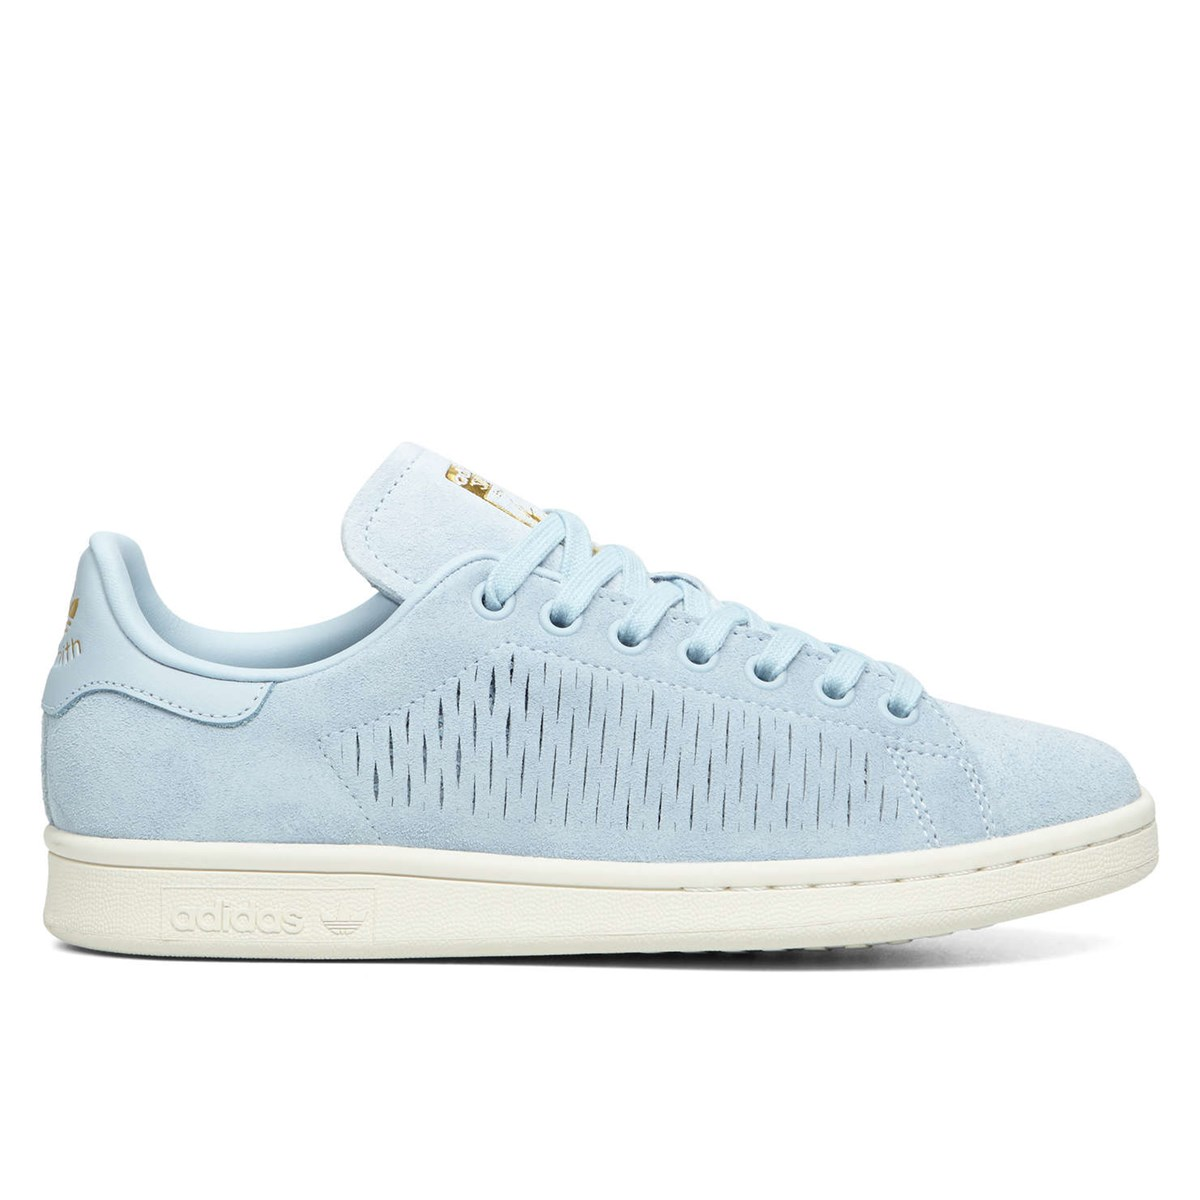 competitive price 835bf 6012f Women s Stan Smith Light Blue Sneaker. Previous. default view  ALT1  ALT2